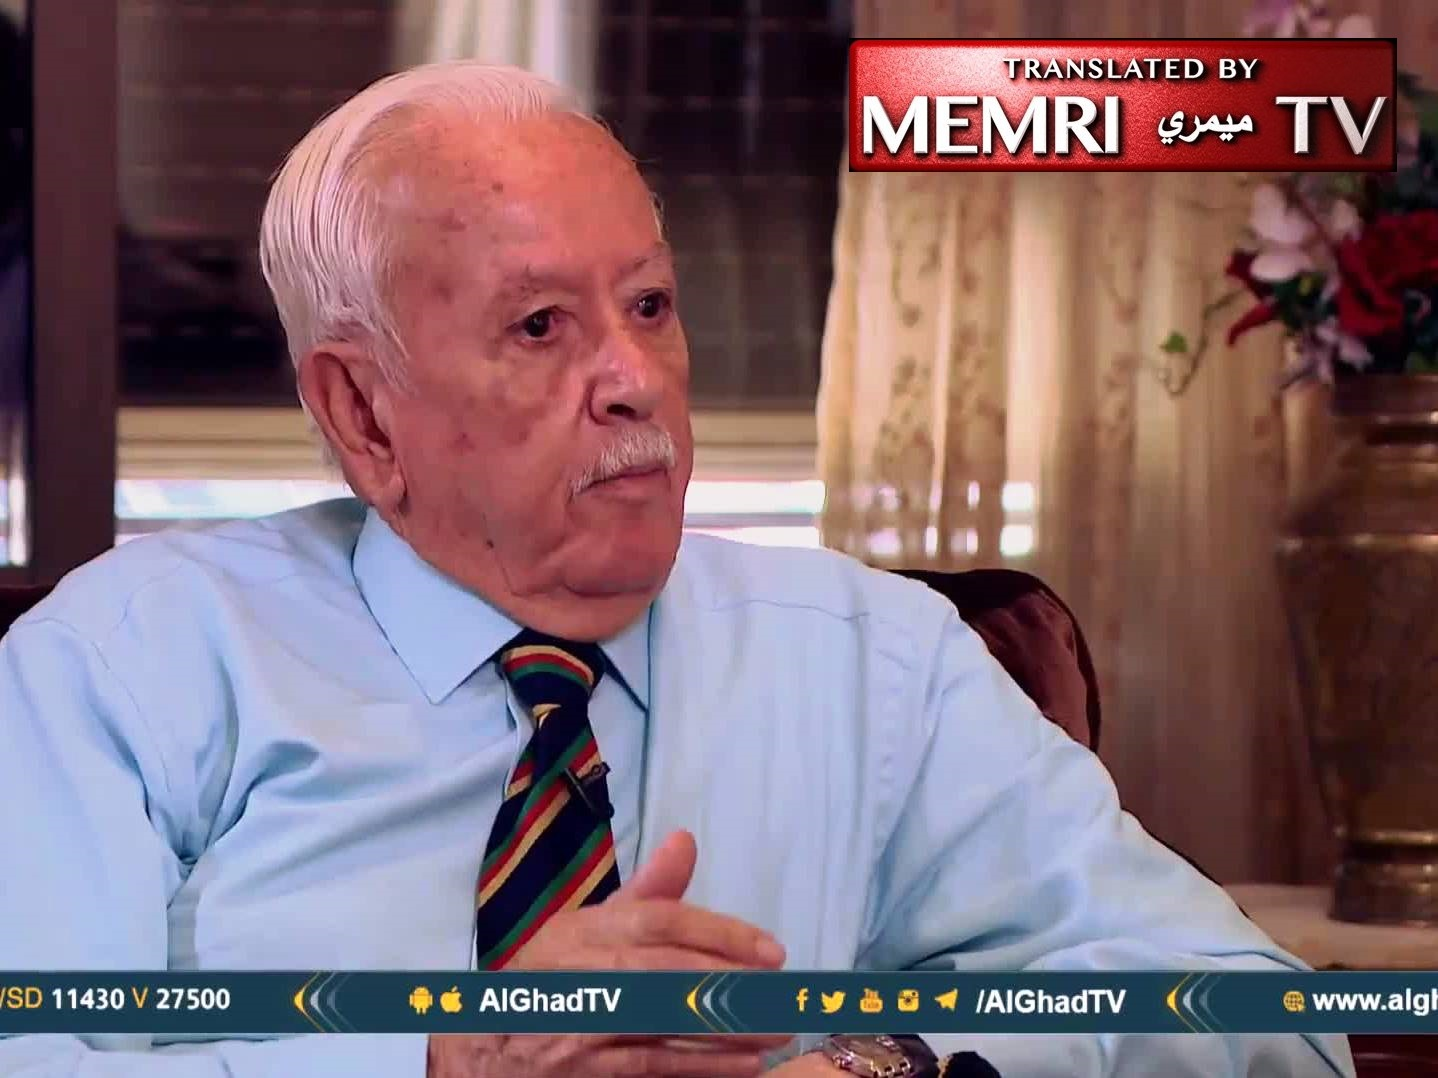 Palestinian-Jordanian Historian Husni Ayesh: ISIS, Al-Qaeda Emerged from Beneath the Cloak of the Muslim Brotherhood